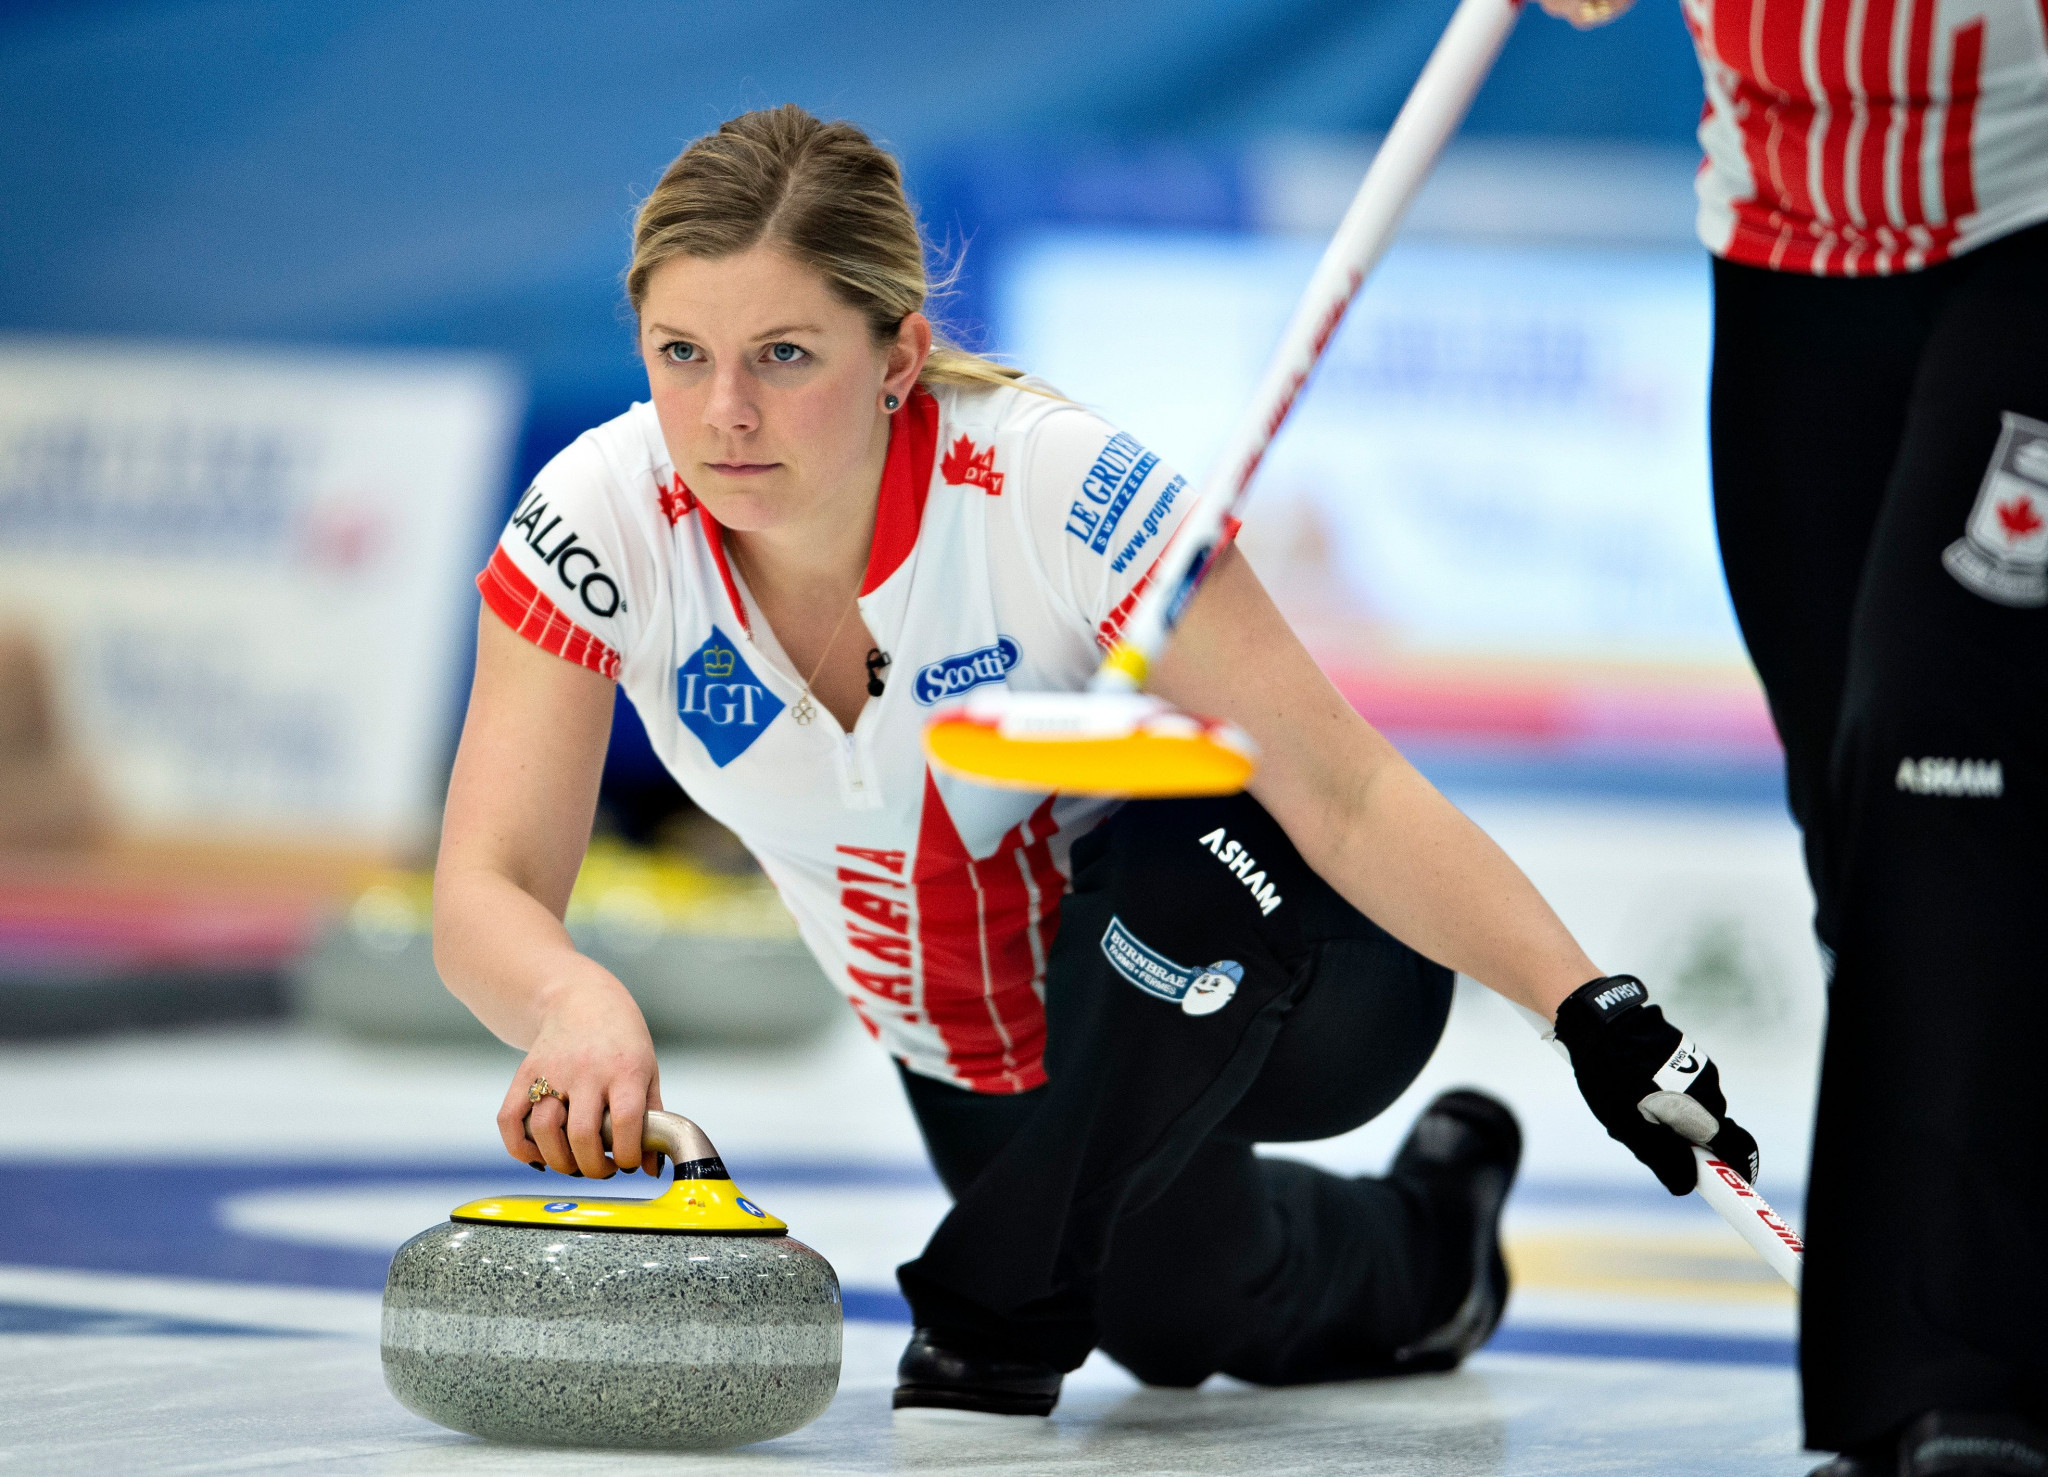 Curling Canada proposes sweeping changes in return-to-play guide